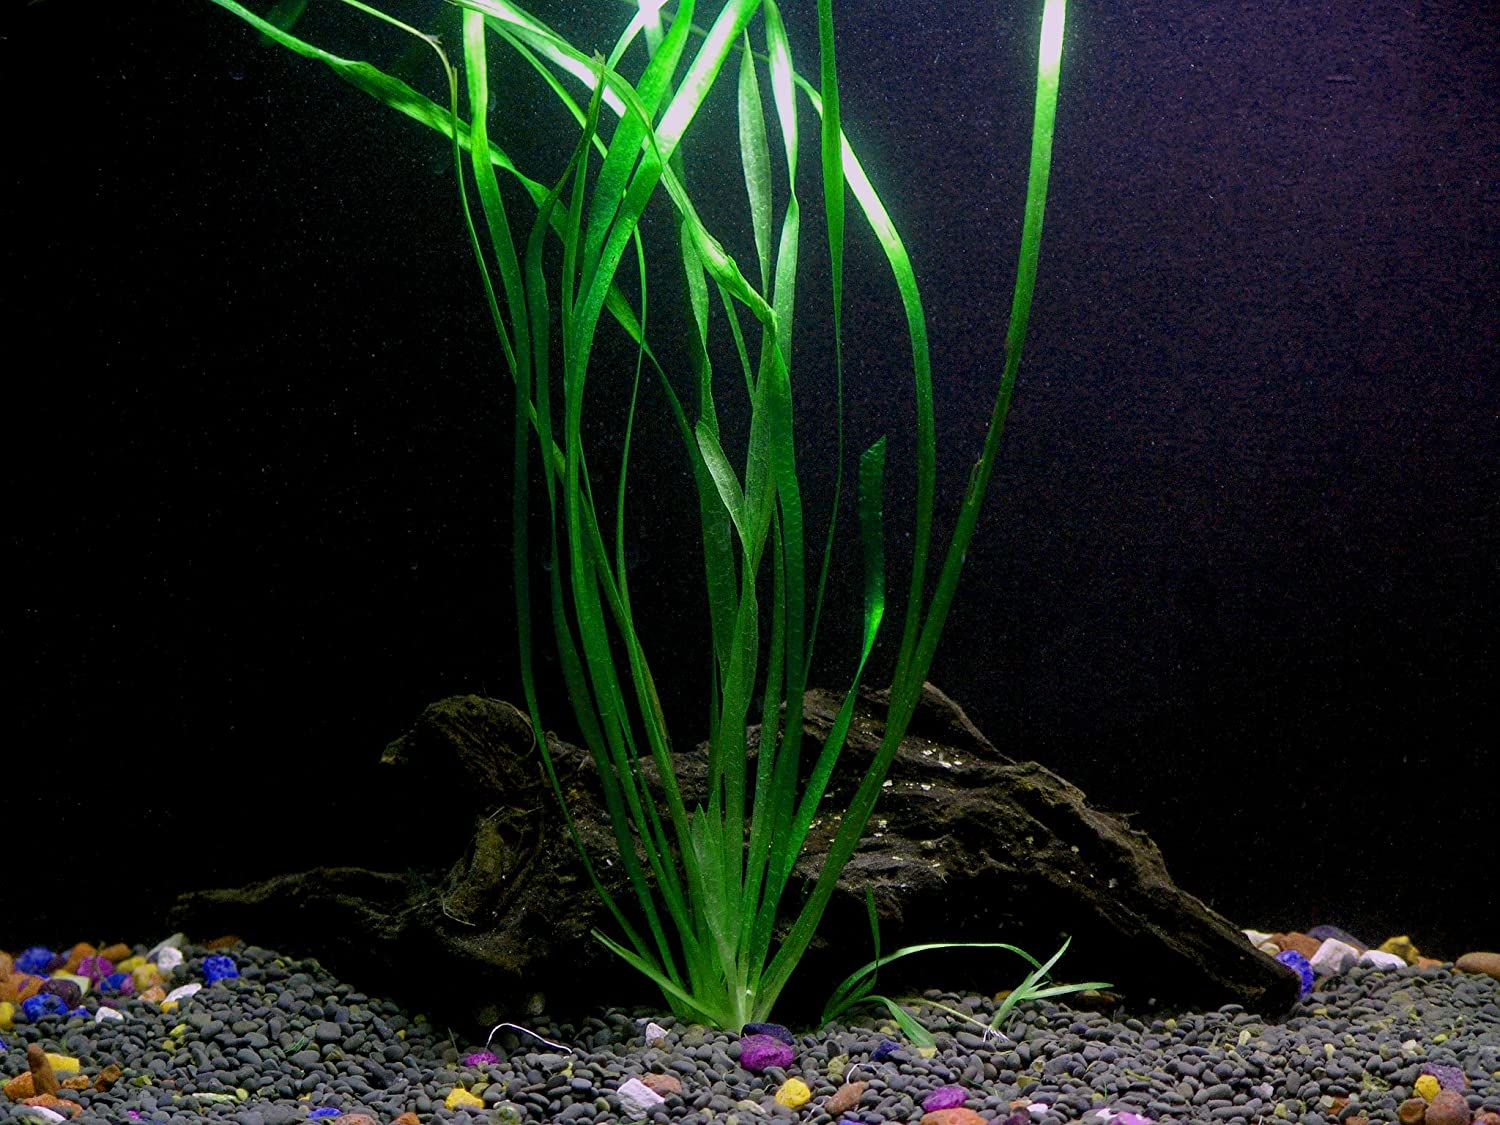 1 Vallisneria Italian Bunch - Beginner Tropical Live Aquarium Plant Aquarium Plants & Pets